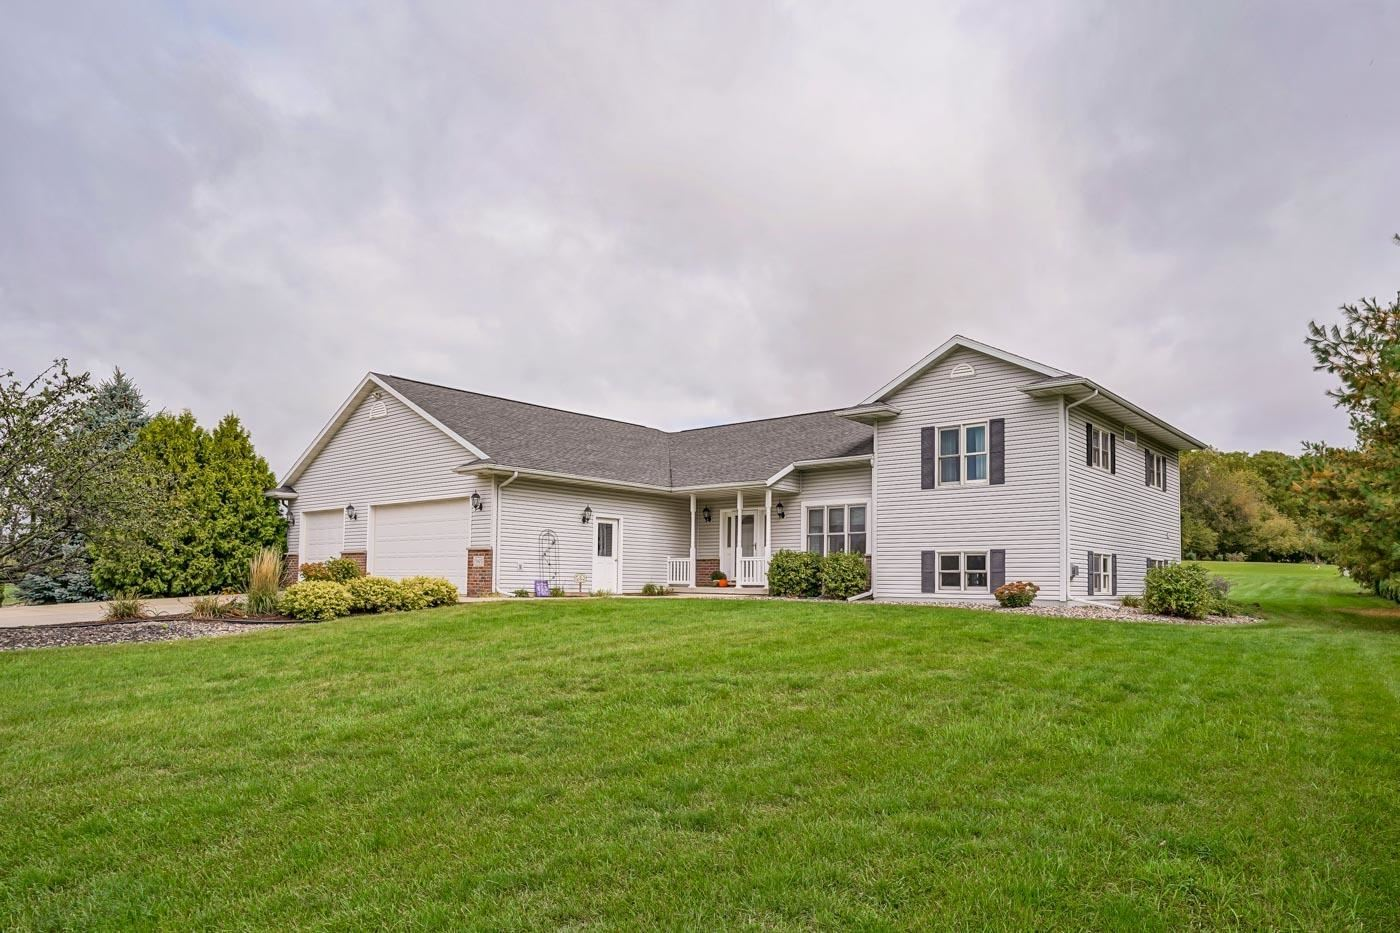 Photo for 5165 Preservation Pl, Sun Prairie, WI 53590 (MLS # 1921333)